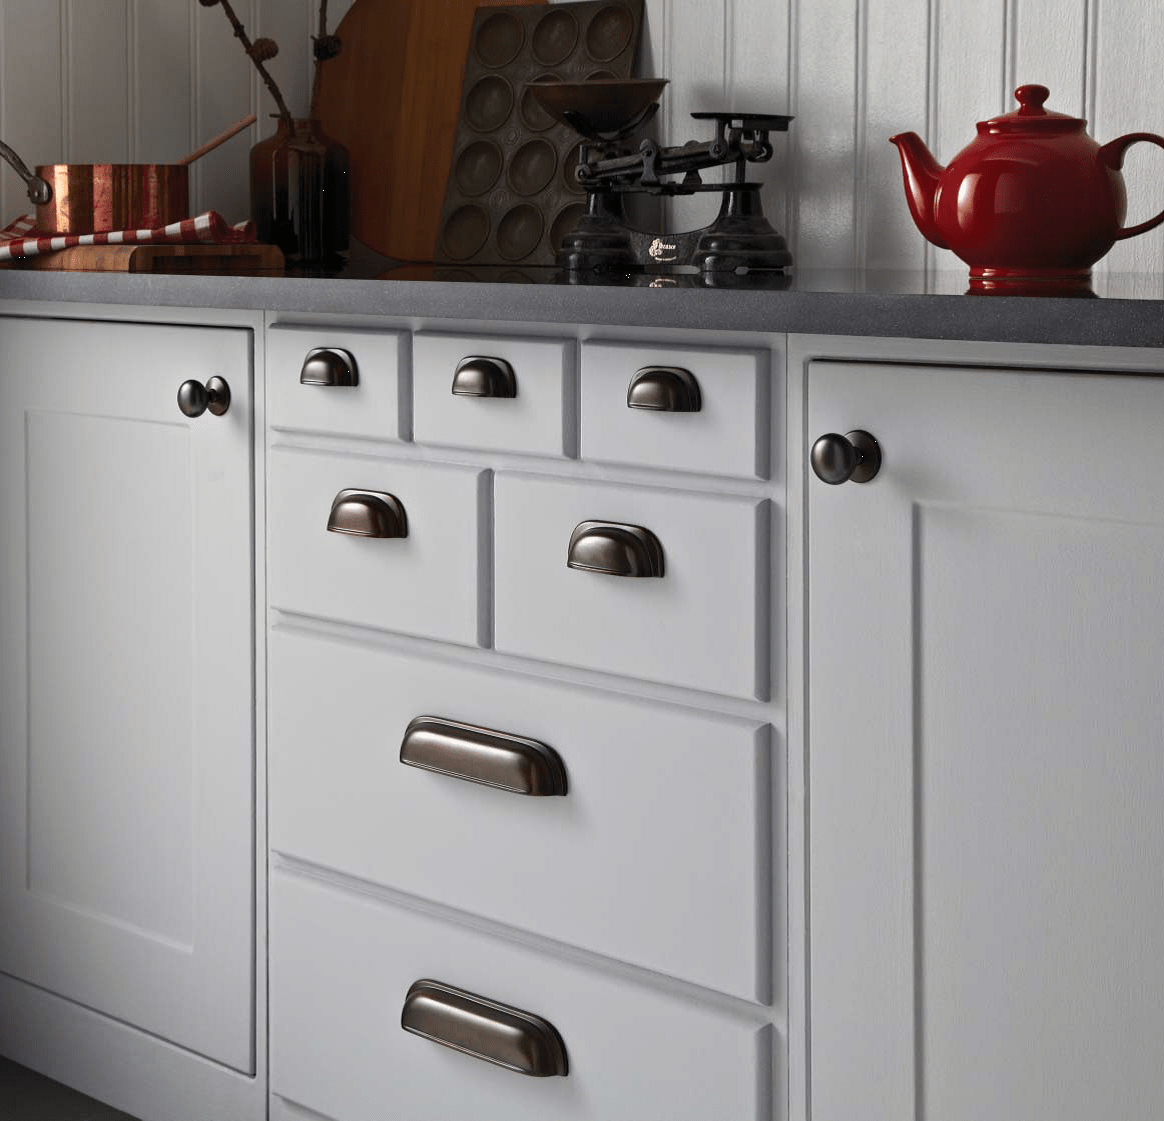 country kitchen door knobs blue color cabinets timeless classic cupboard handles in rubbed